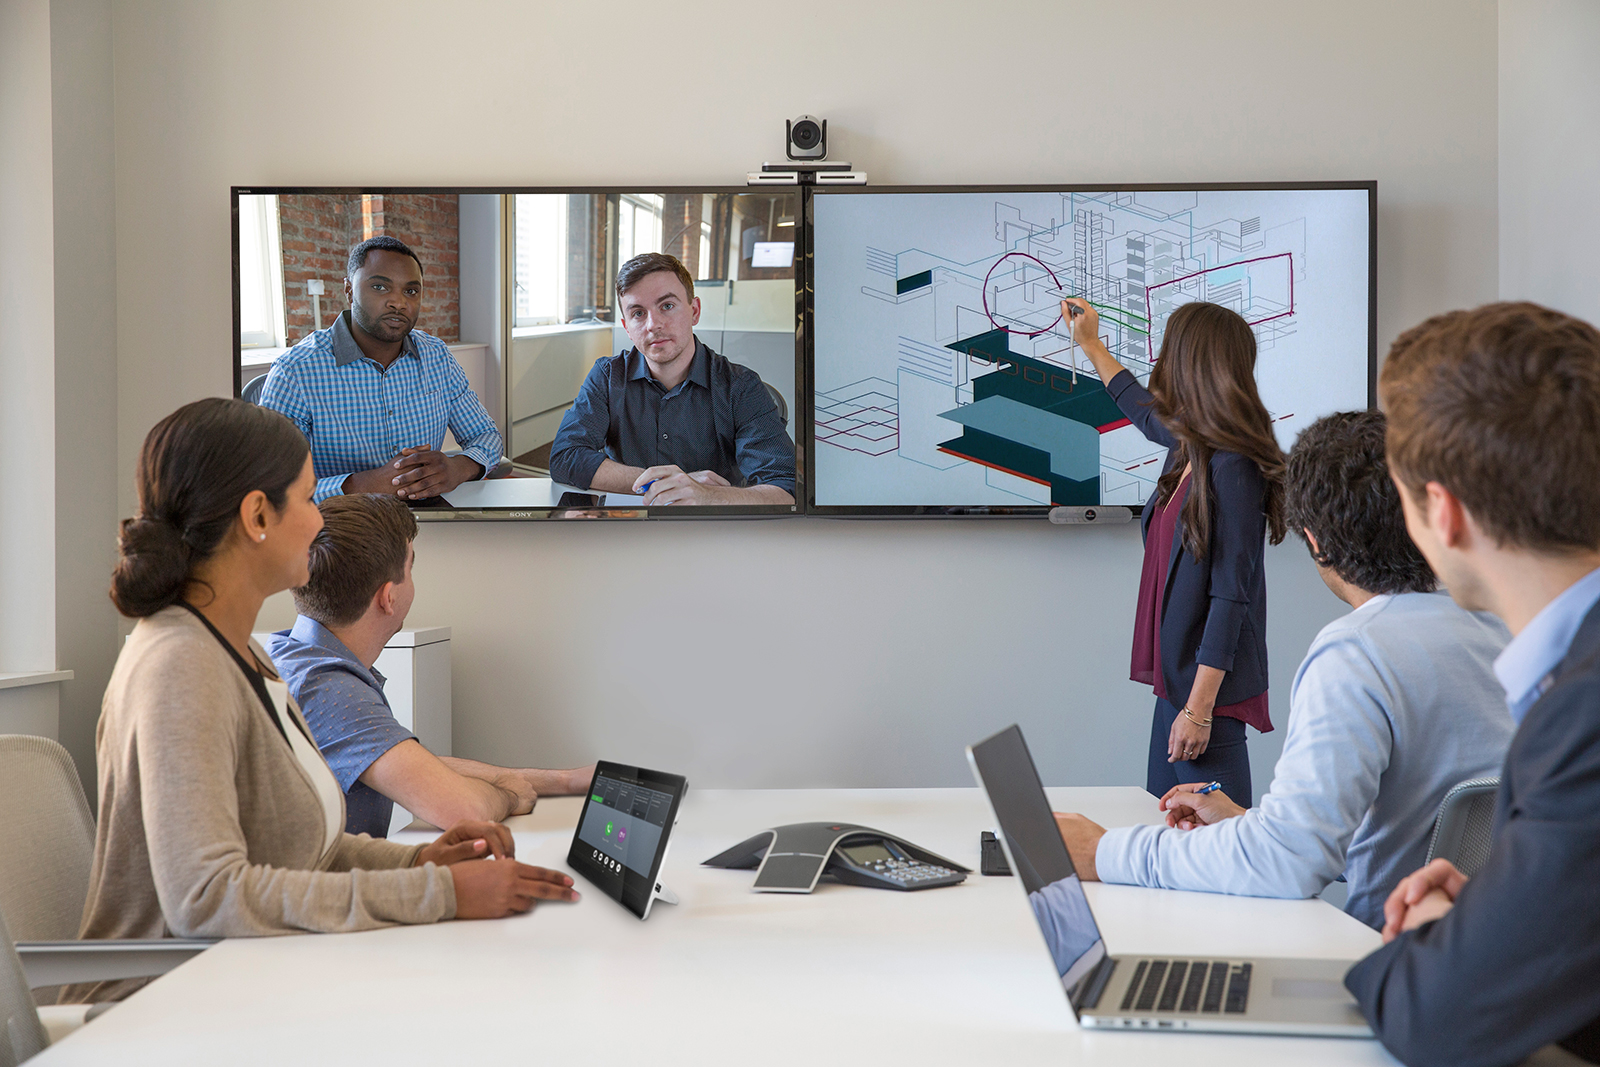 Videoconferencing and meeting tools